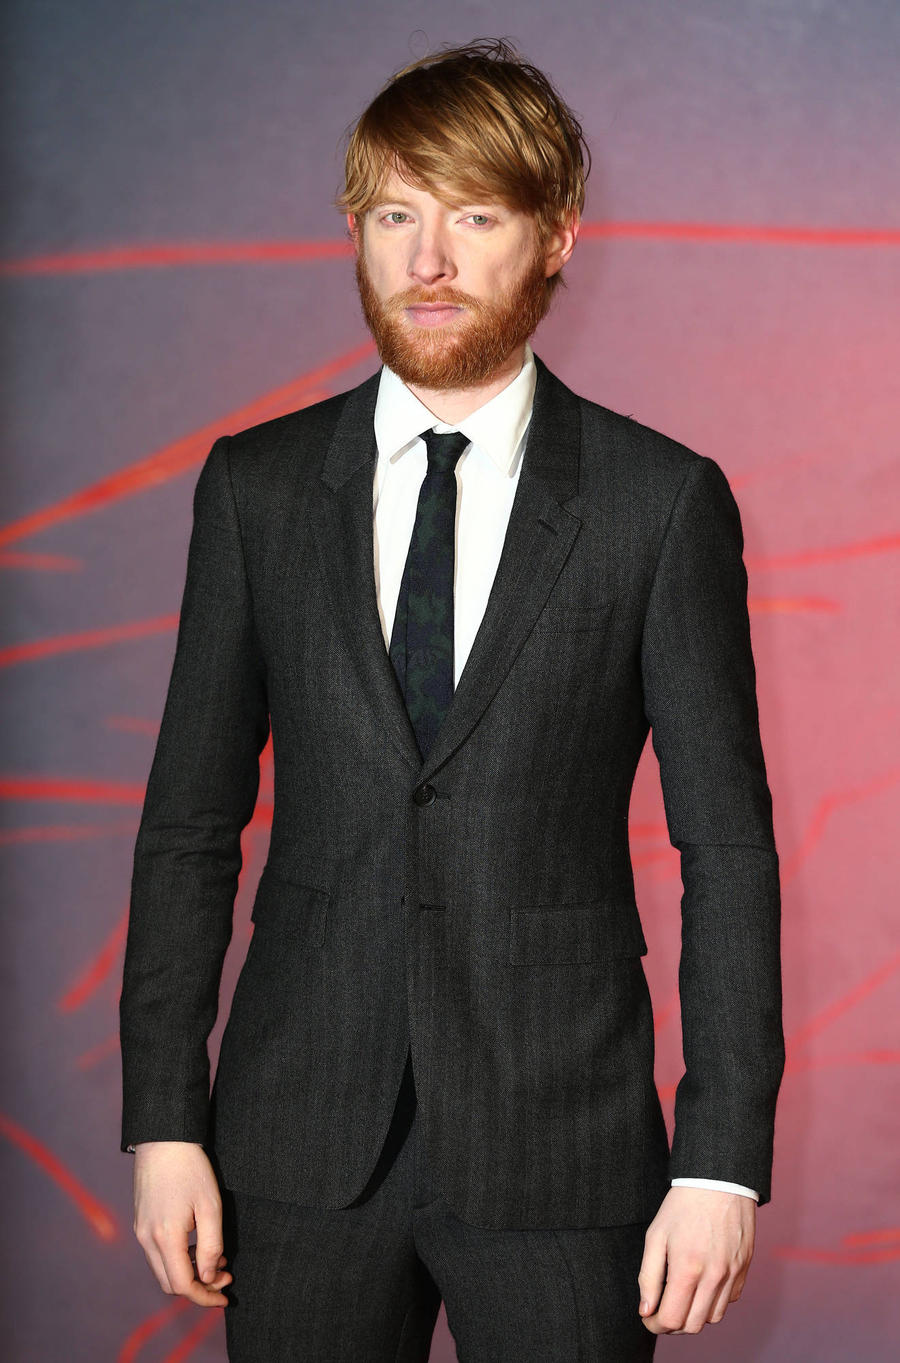 Domhnall Gleeson And Sienna Miller Cast In Burberry's Holiday Film